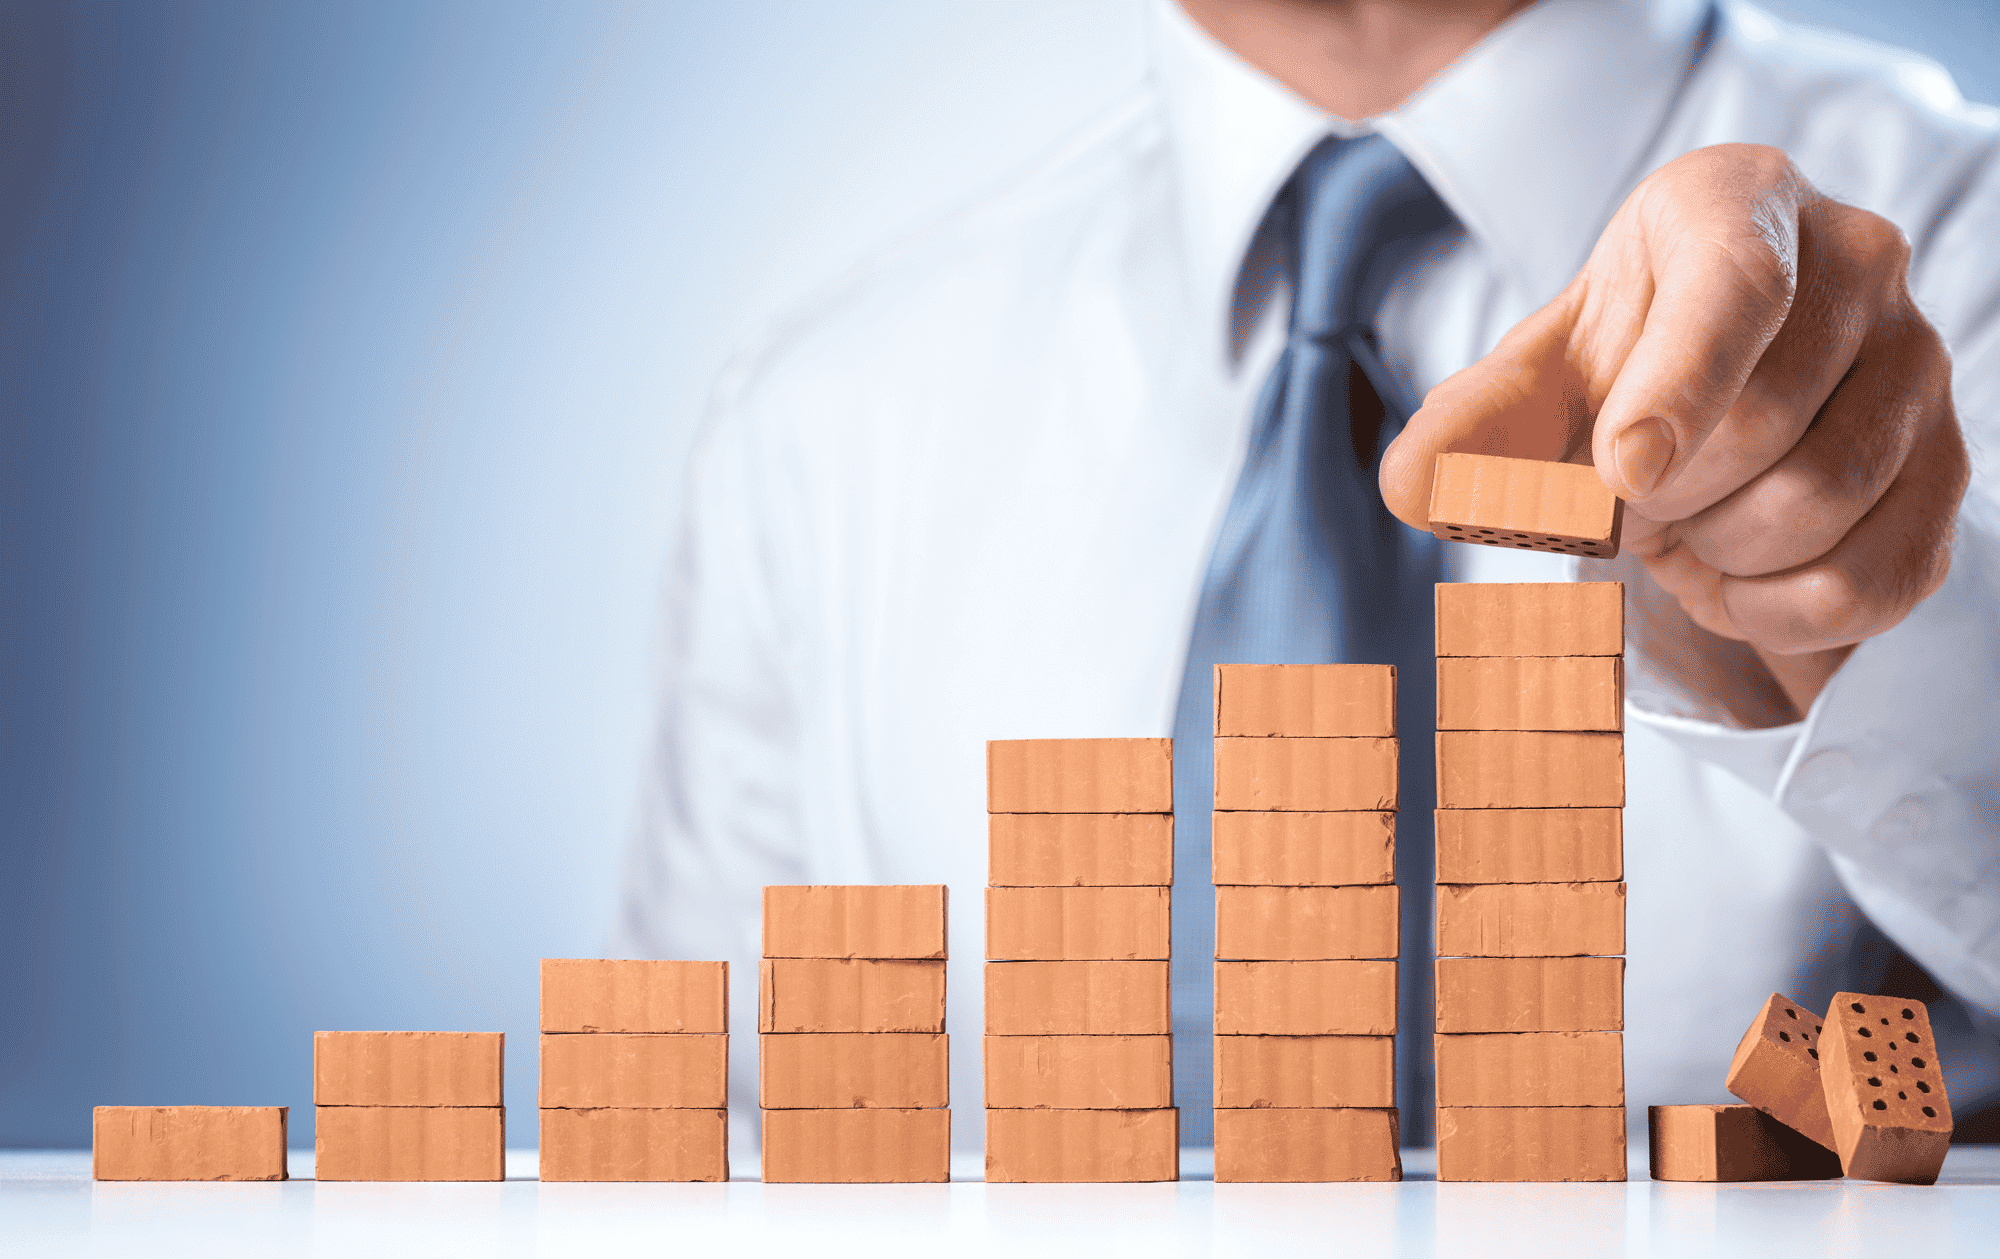 Requirements KPIs | The 5 features of Key Performance Indicators